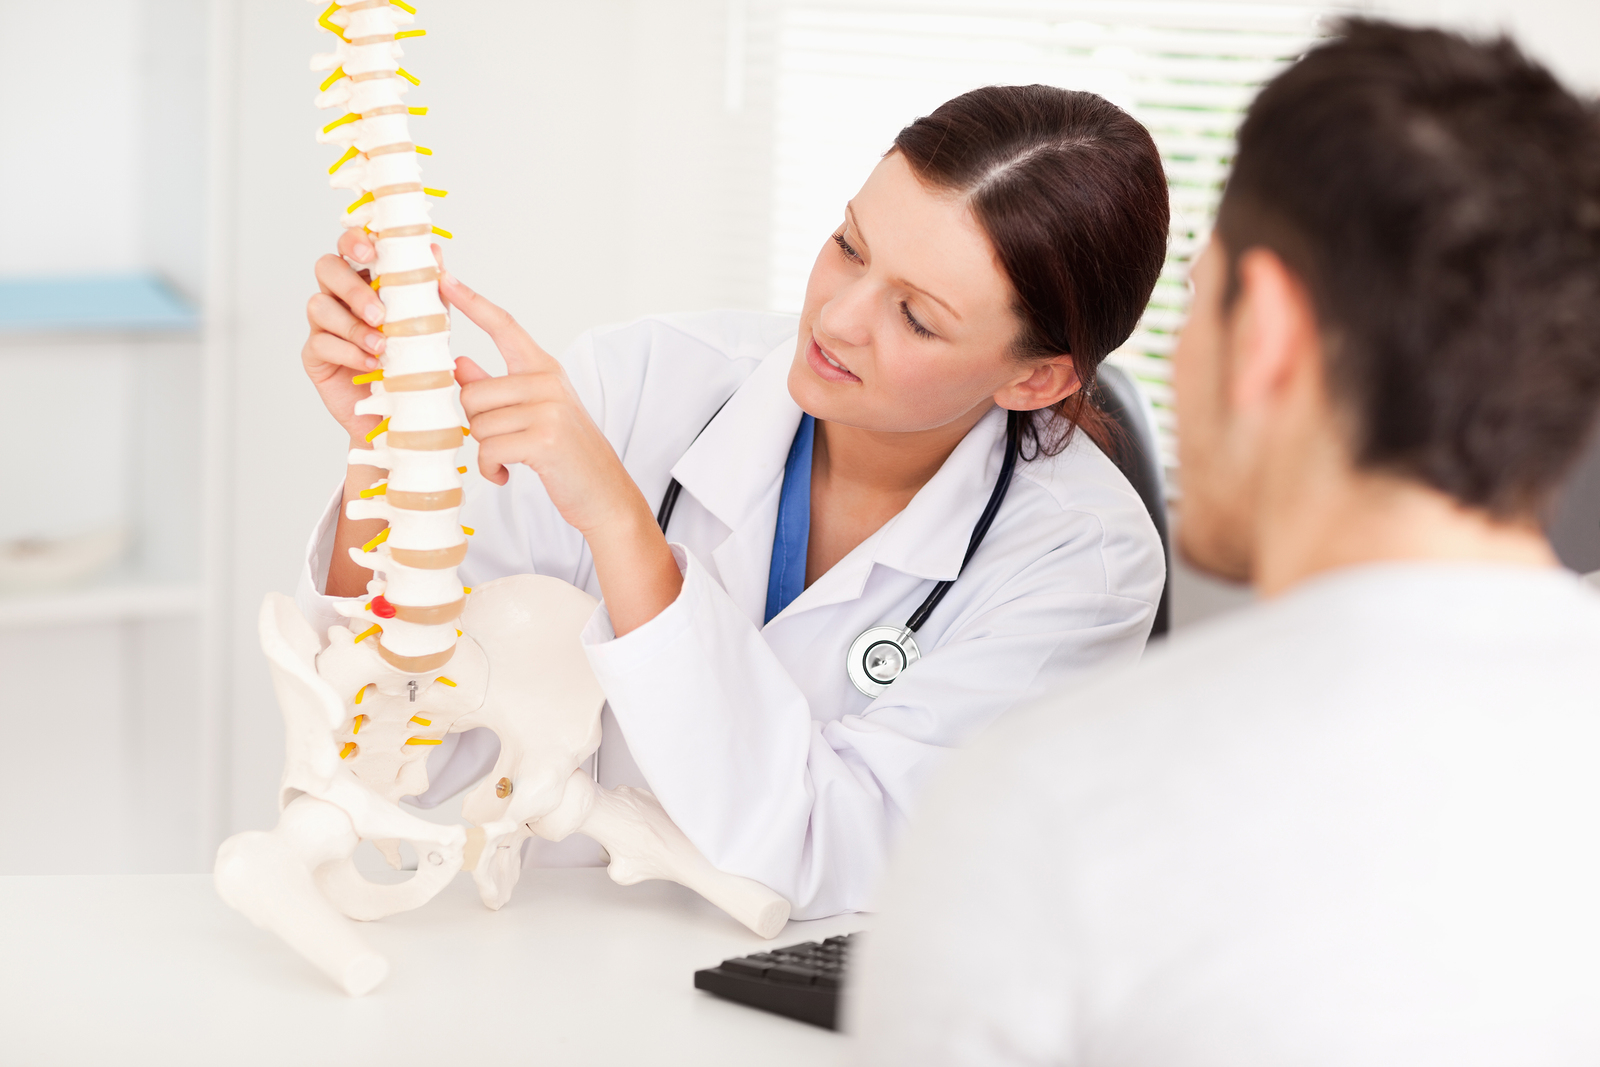 How To Relieve Sciatic Nerve Pain Naturally - MMT - Mechanical Motion Therapy